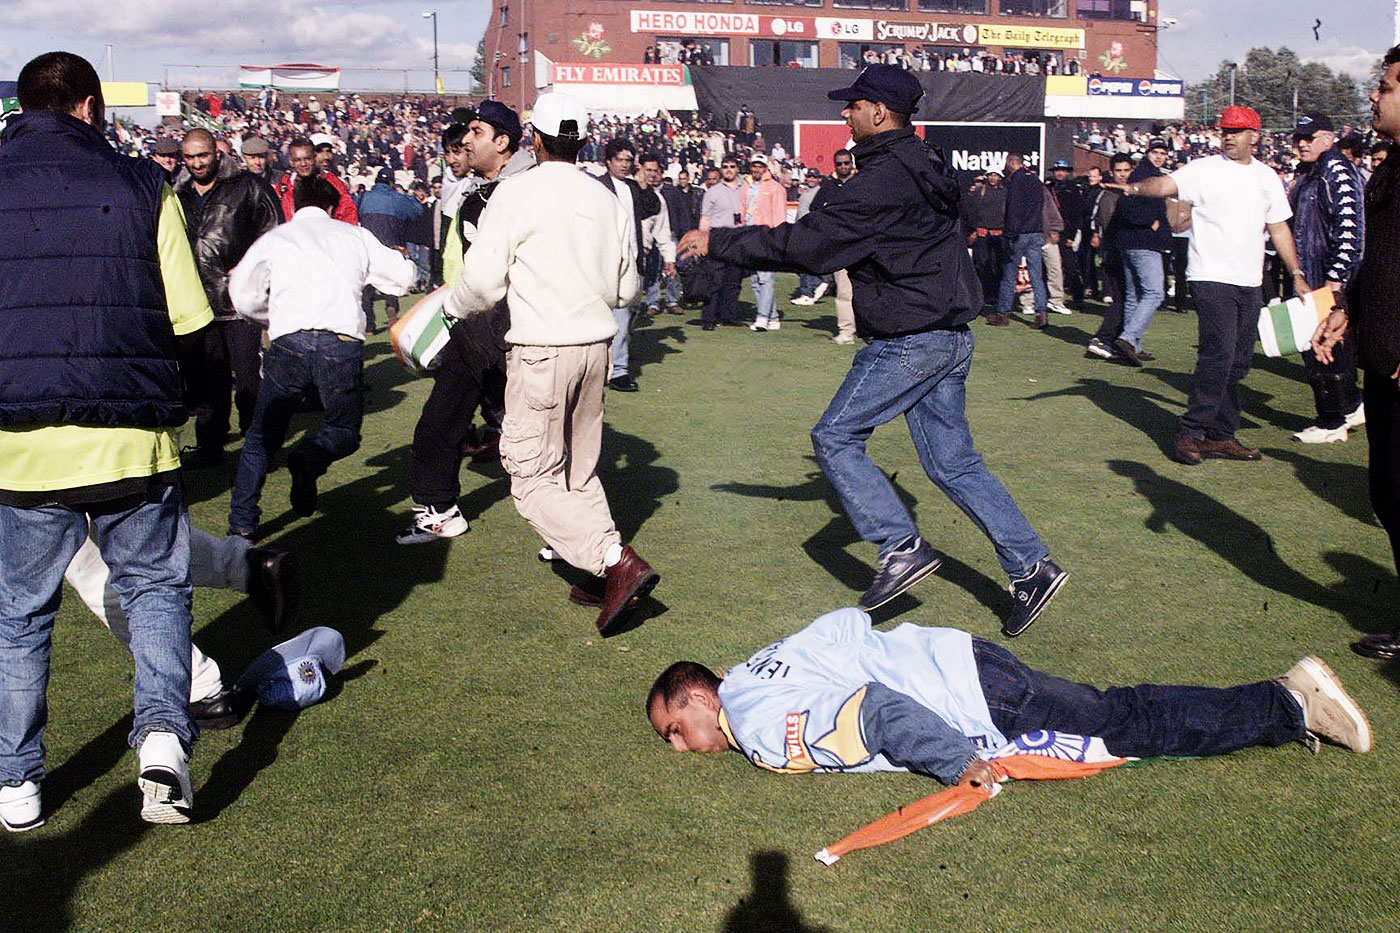 An India fan falls to the ground during a pitch invasion at Old Trafford during the 1999 World Cup game between the two sides